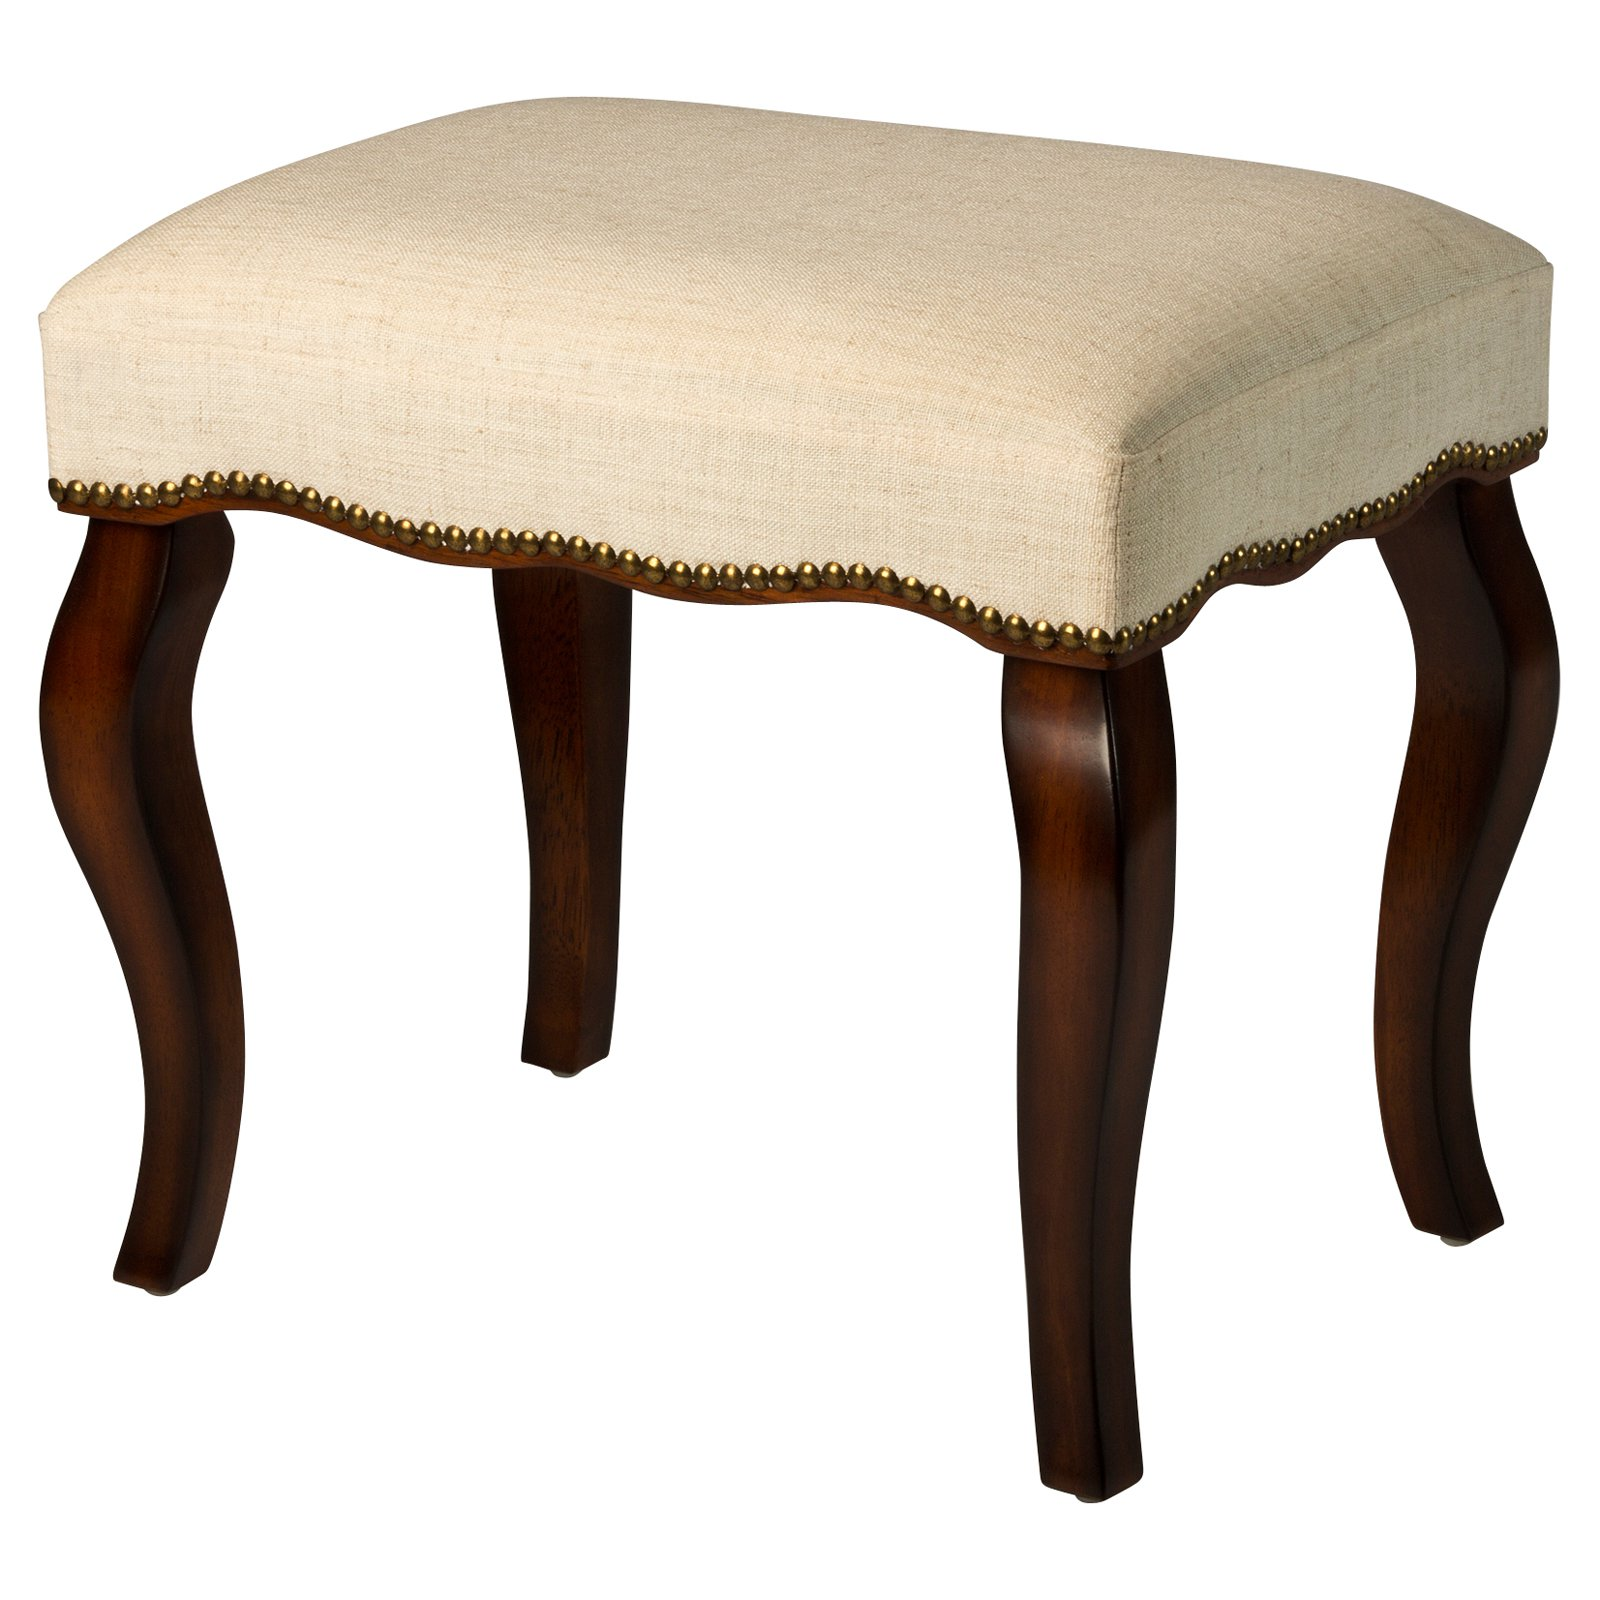 Hillsdale Furniture Hamilton Vanity Stool with Nail Heads, Burnished Oak